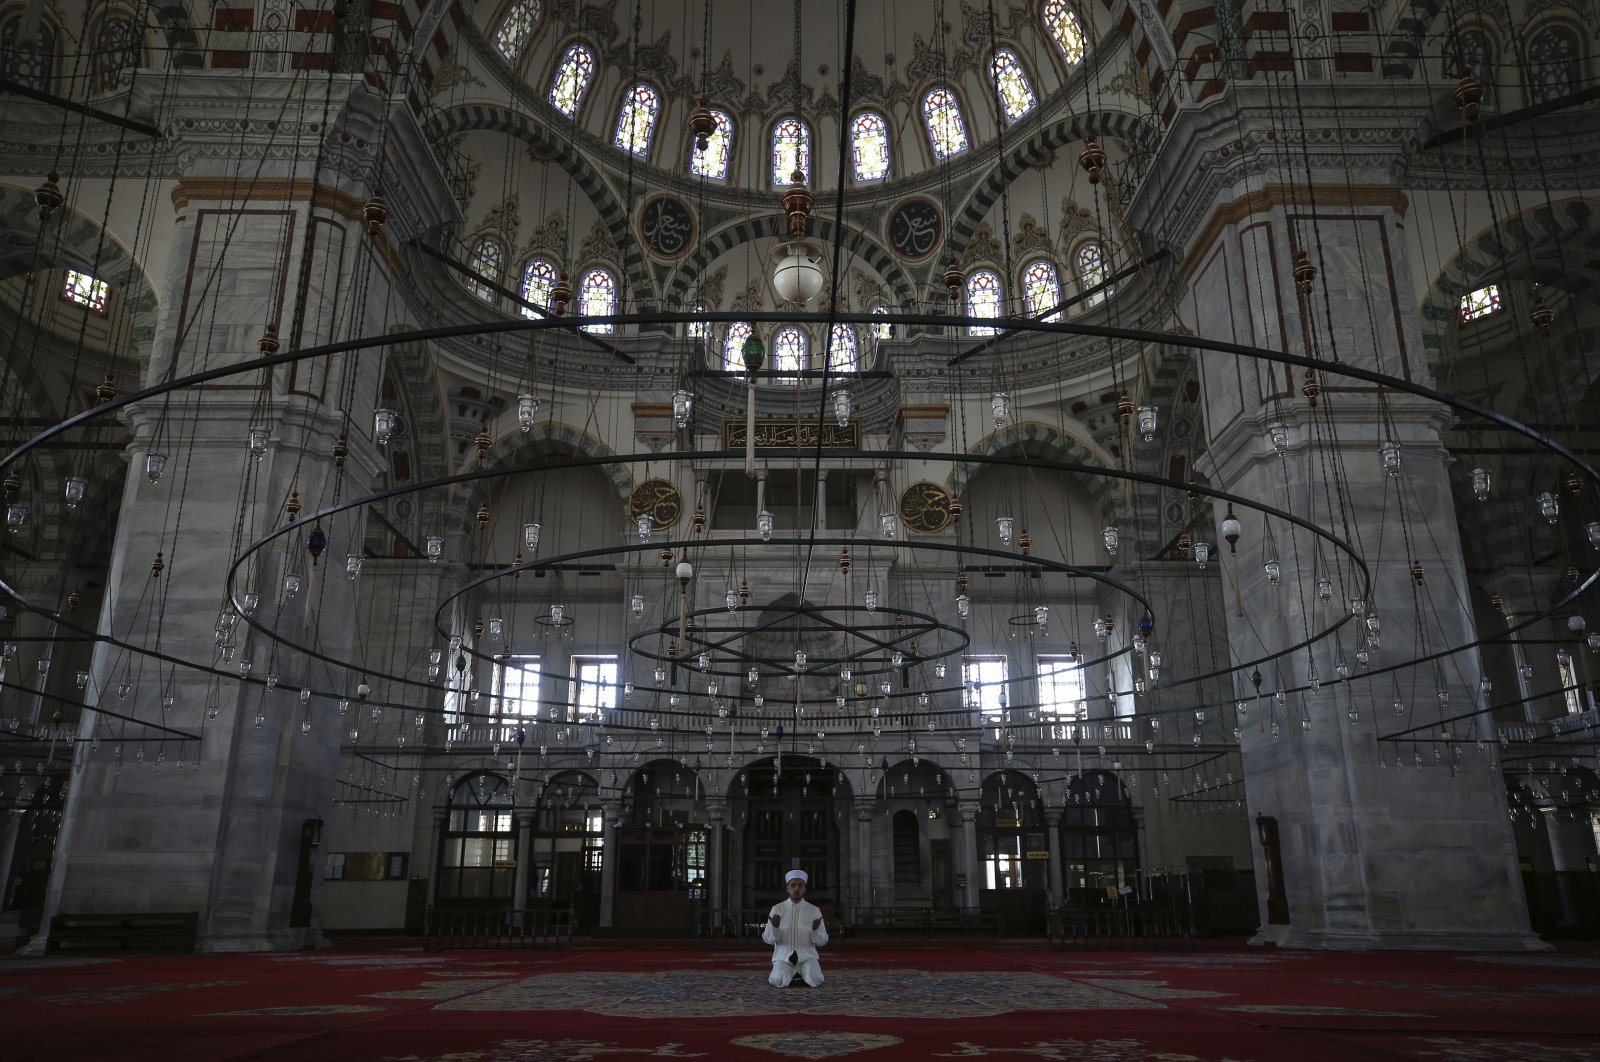 Esat Şahin, imam of the iconic Fatih Mosque, holds prayers on the first day of Ramadan without the public due to the coronavirus restrictions in Istanbul, Turkey, April 24, 2020. (AP Photo)